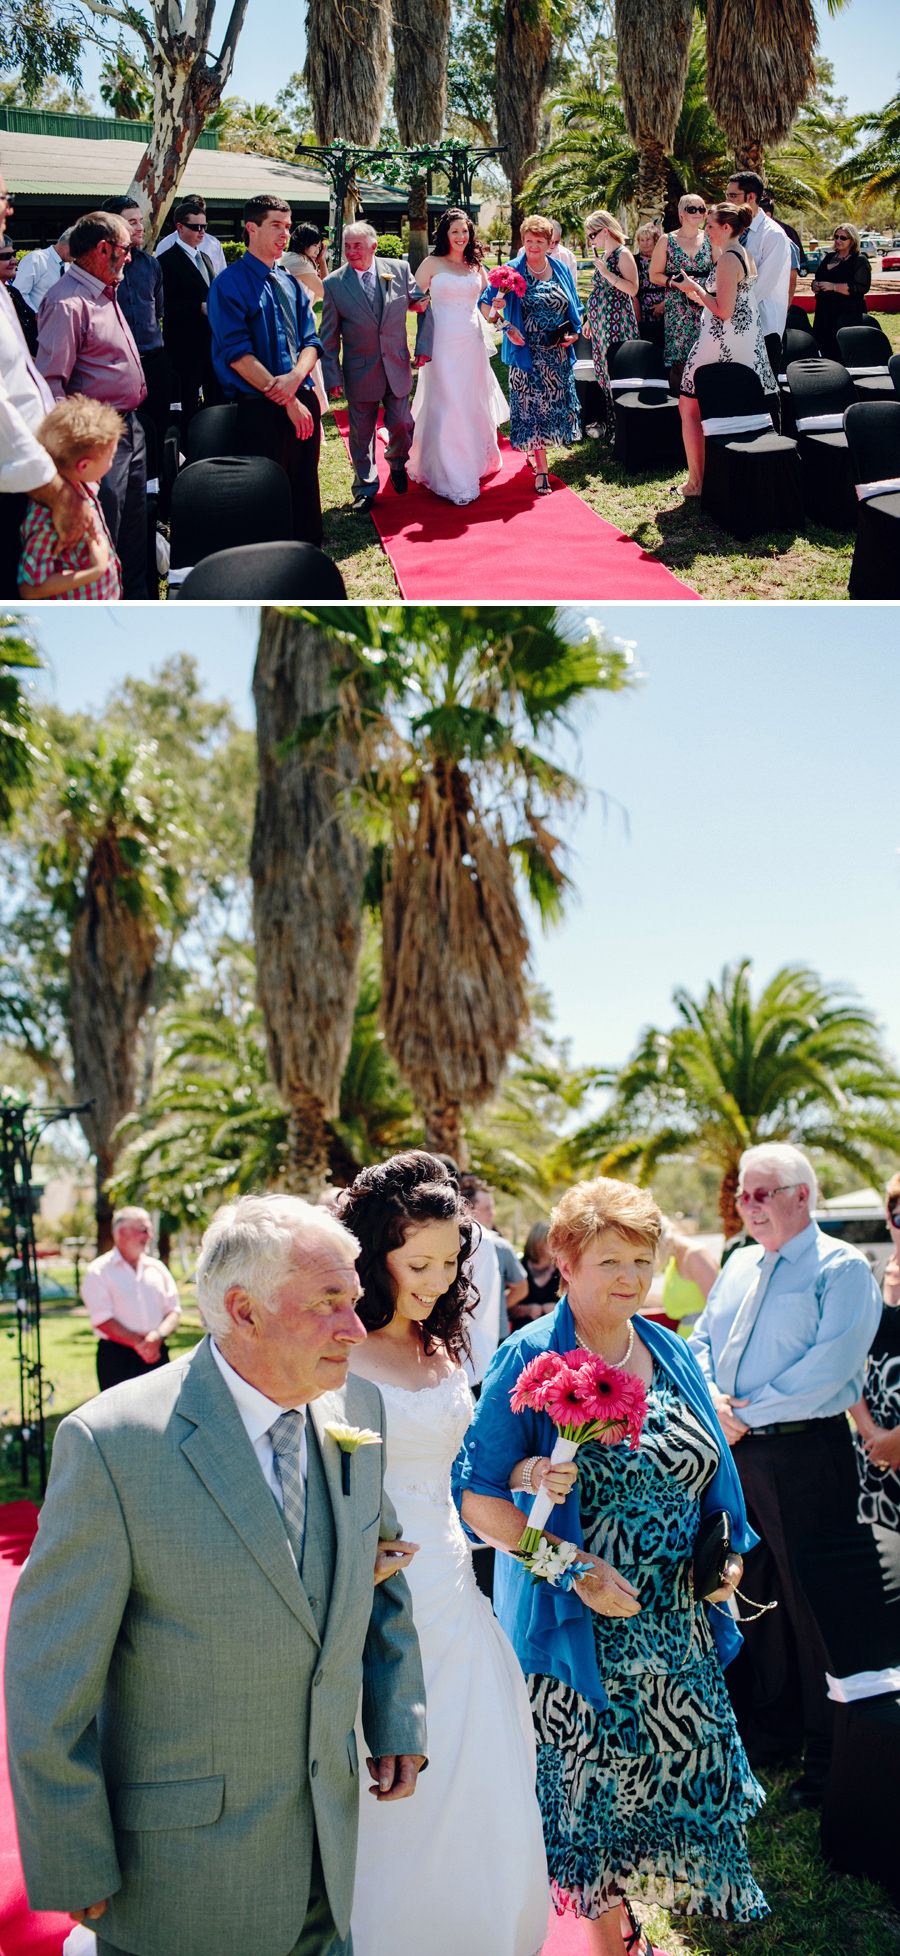 Chifley Alice Springs Wedding Photographers: Walking down the aisle